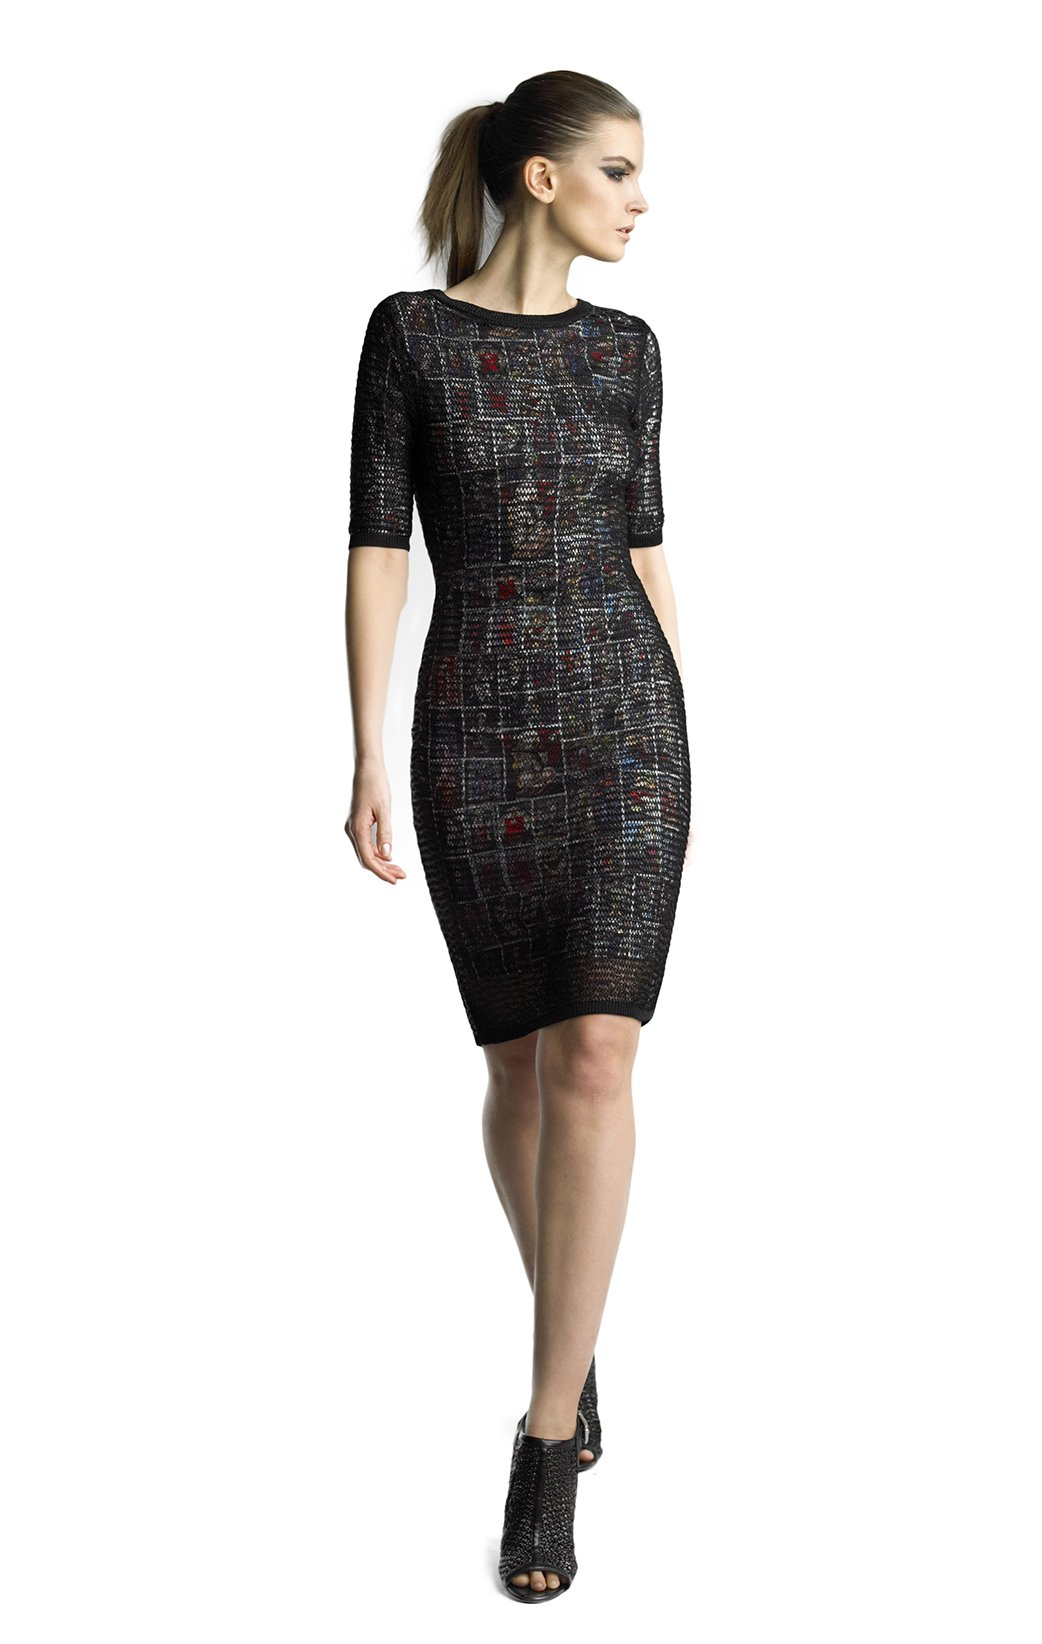 Historic New York Women's Collection of Stained Glass Dress, Black, Large